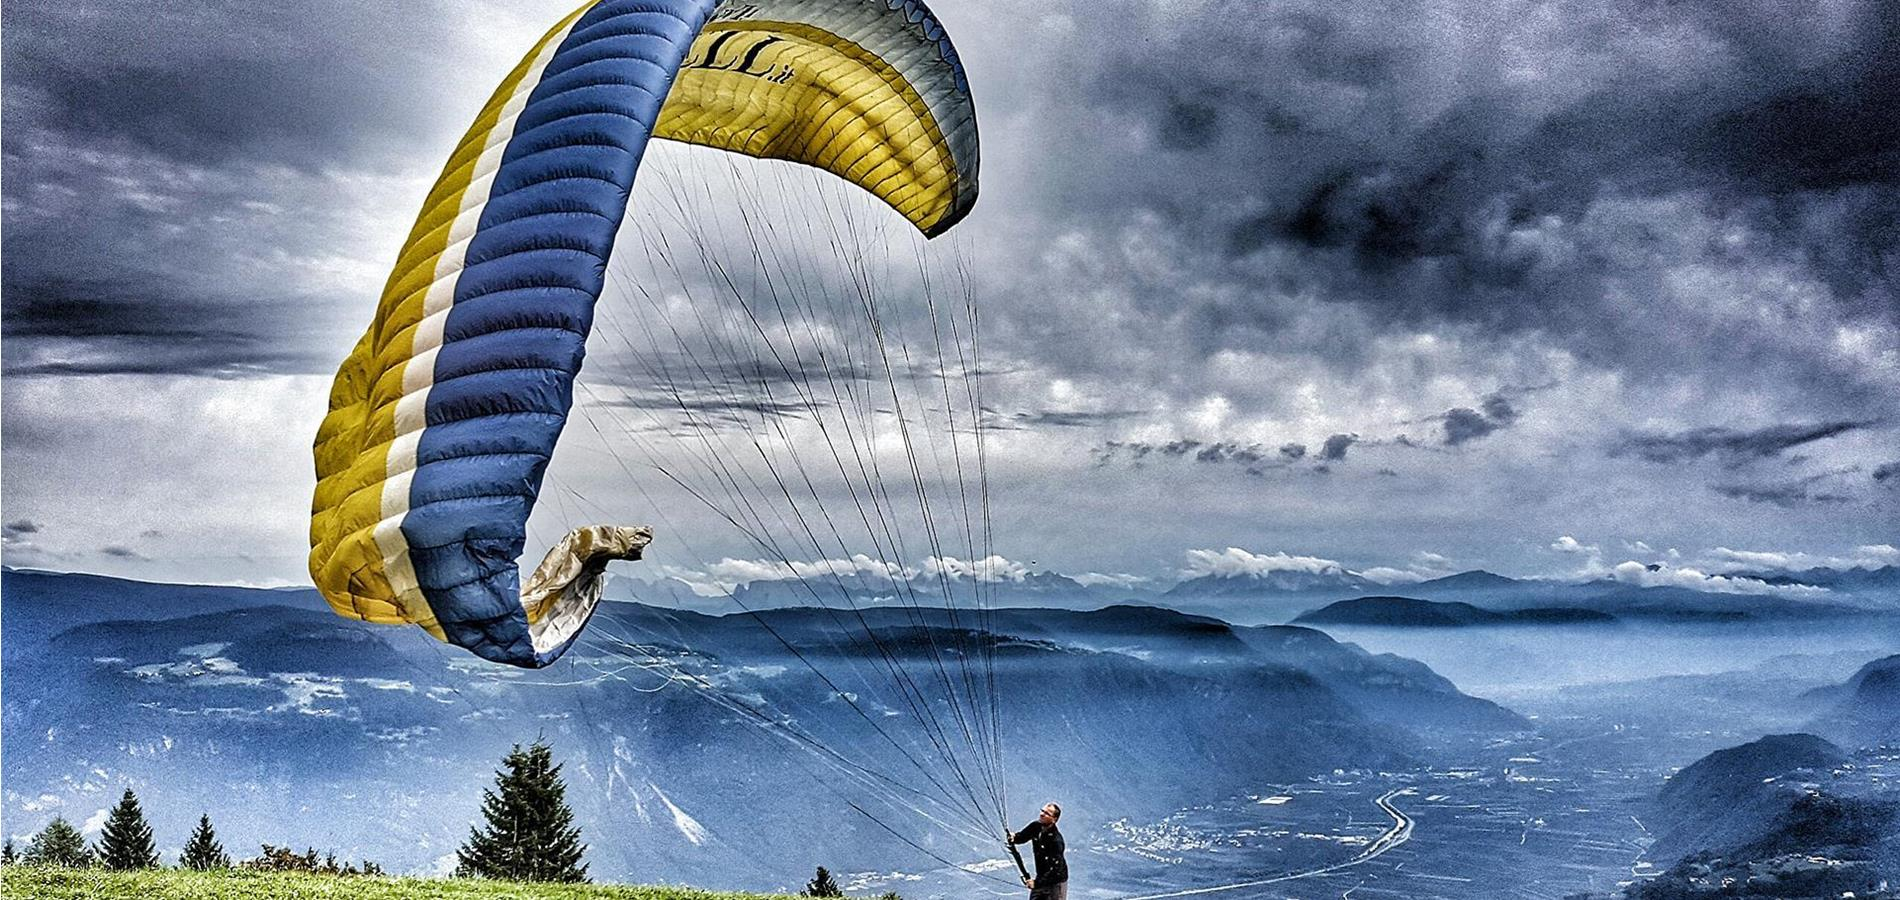 Paragliding in Lana and Environs